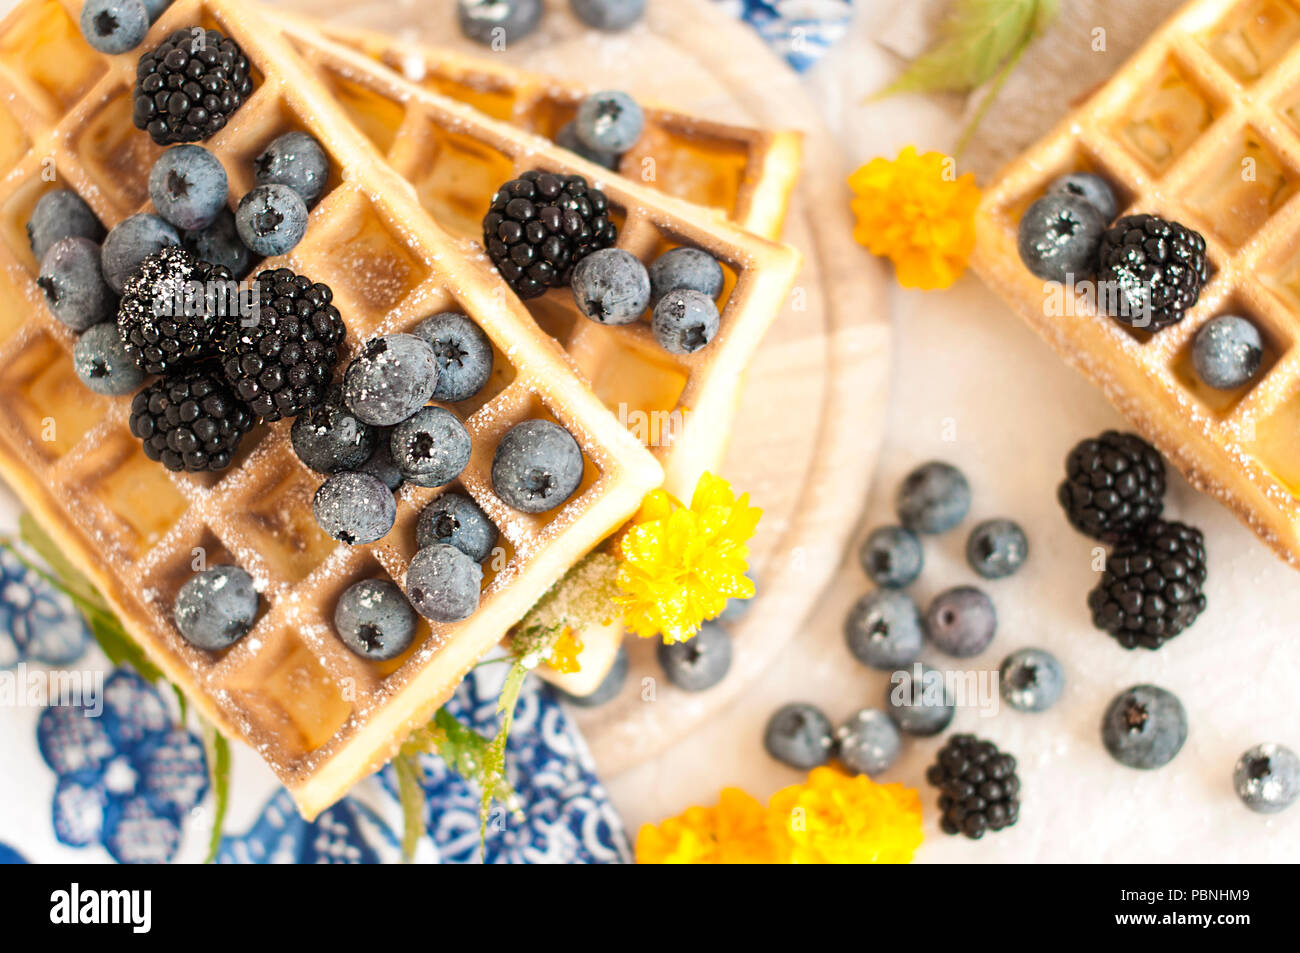 Belgian waffles with strawberries, blueberries and syrup, homemade healthy breakfast, toned image, selective focus, - Stock Image